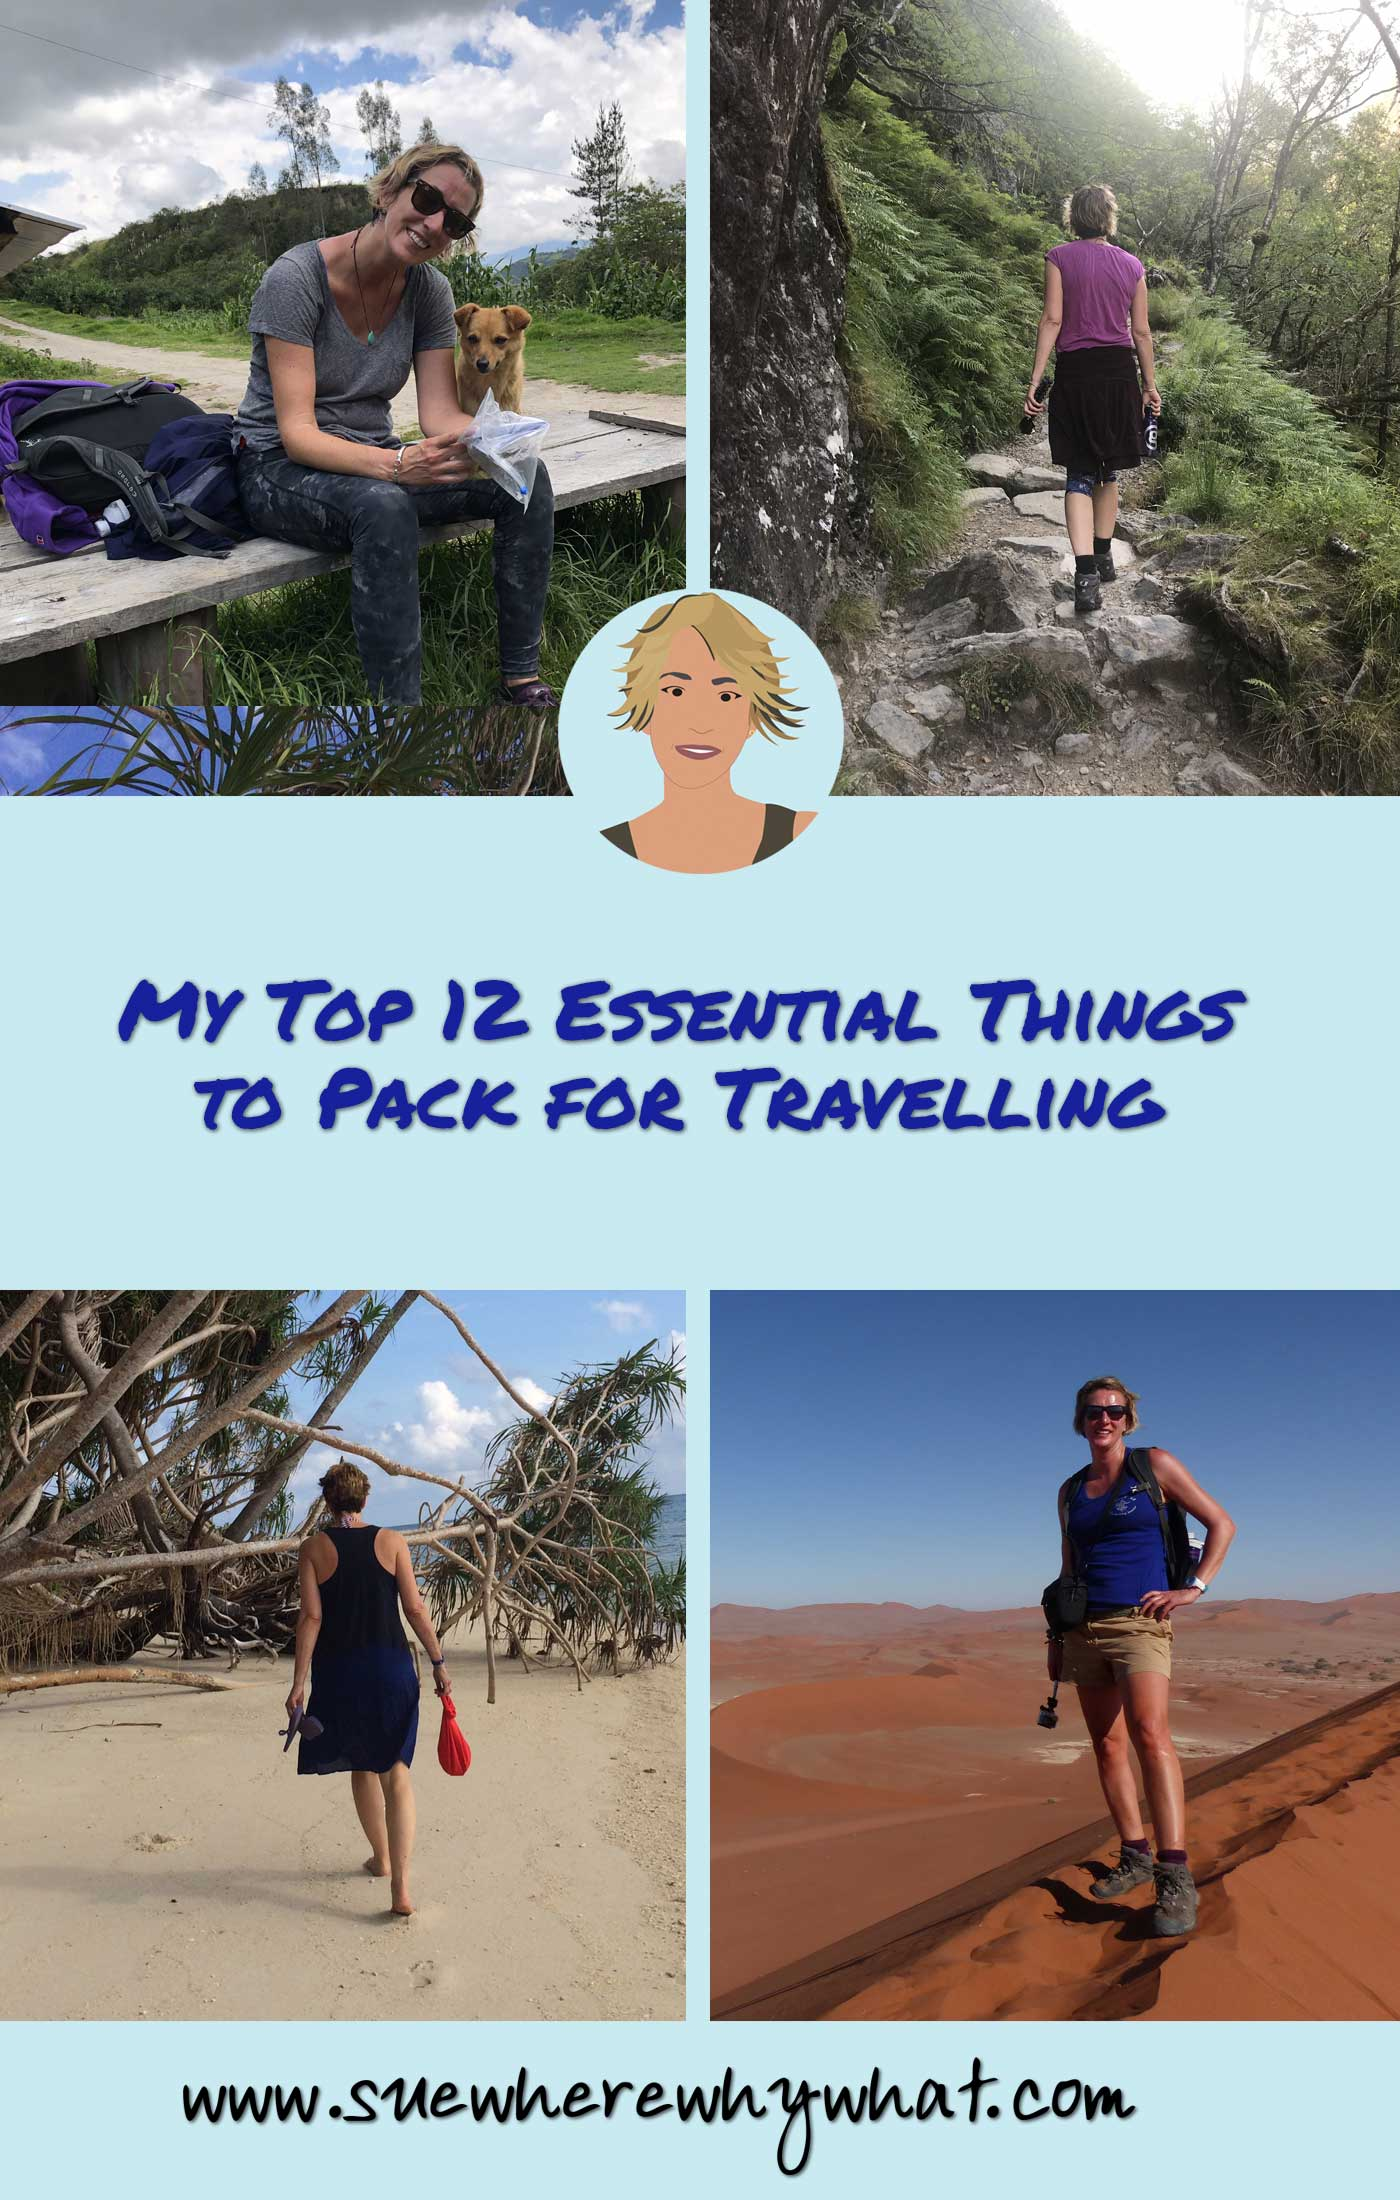 My Top 12 Essential Things to Pack for Travelling